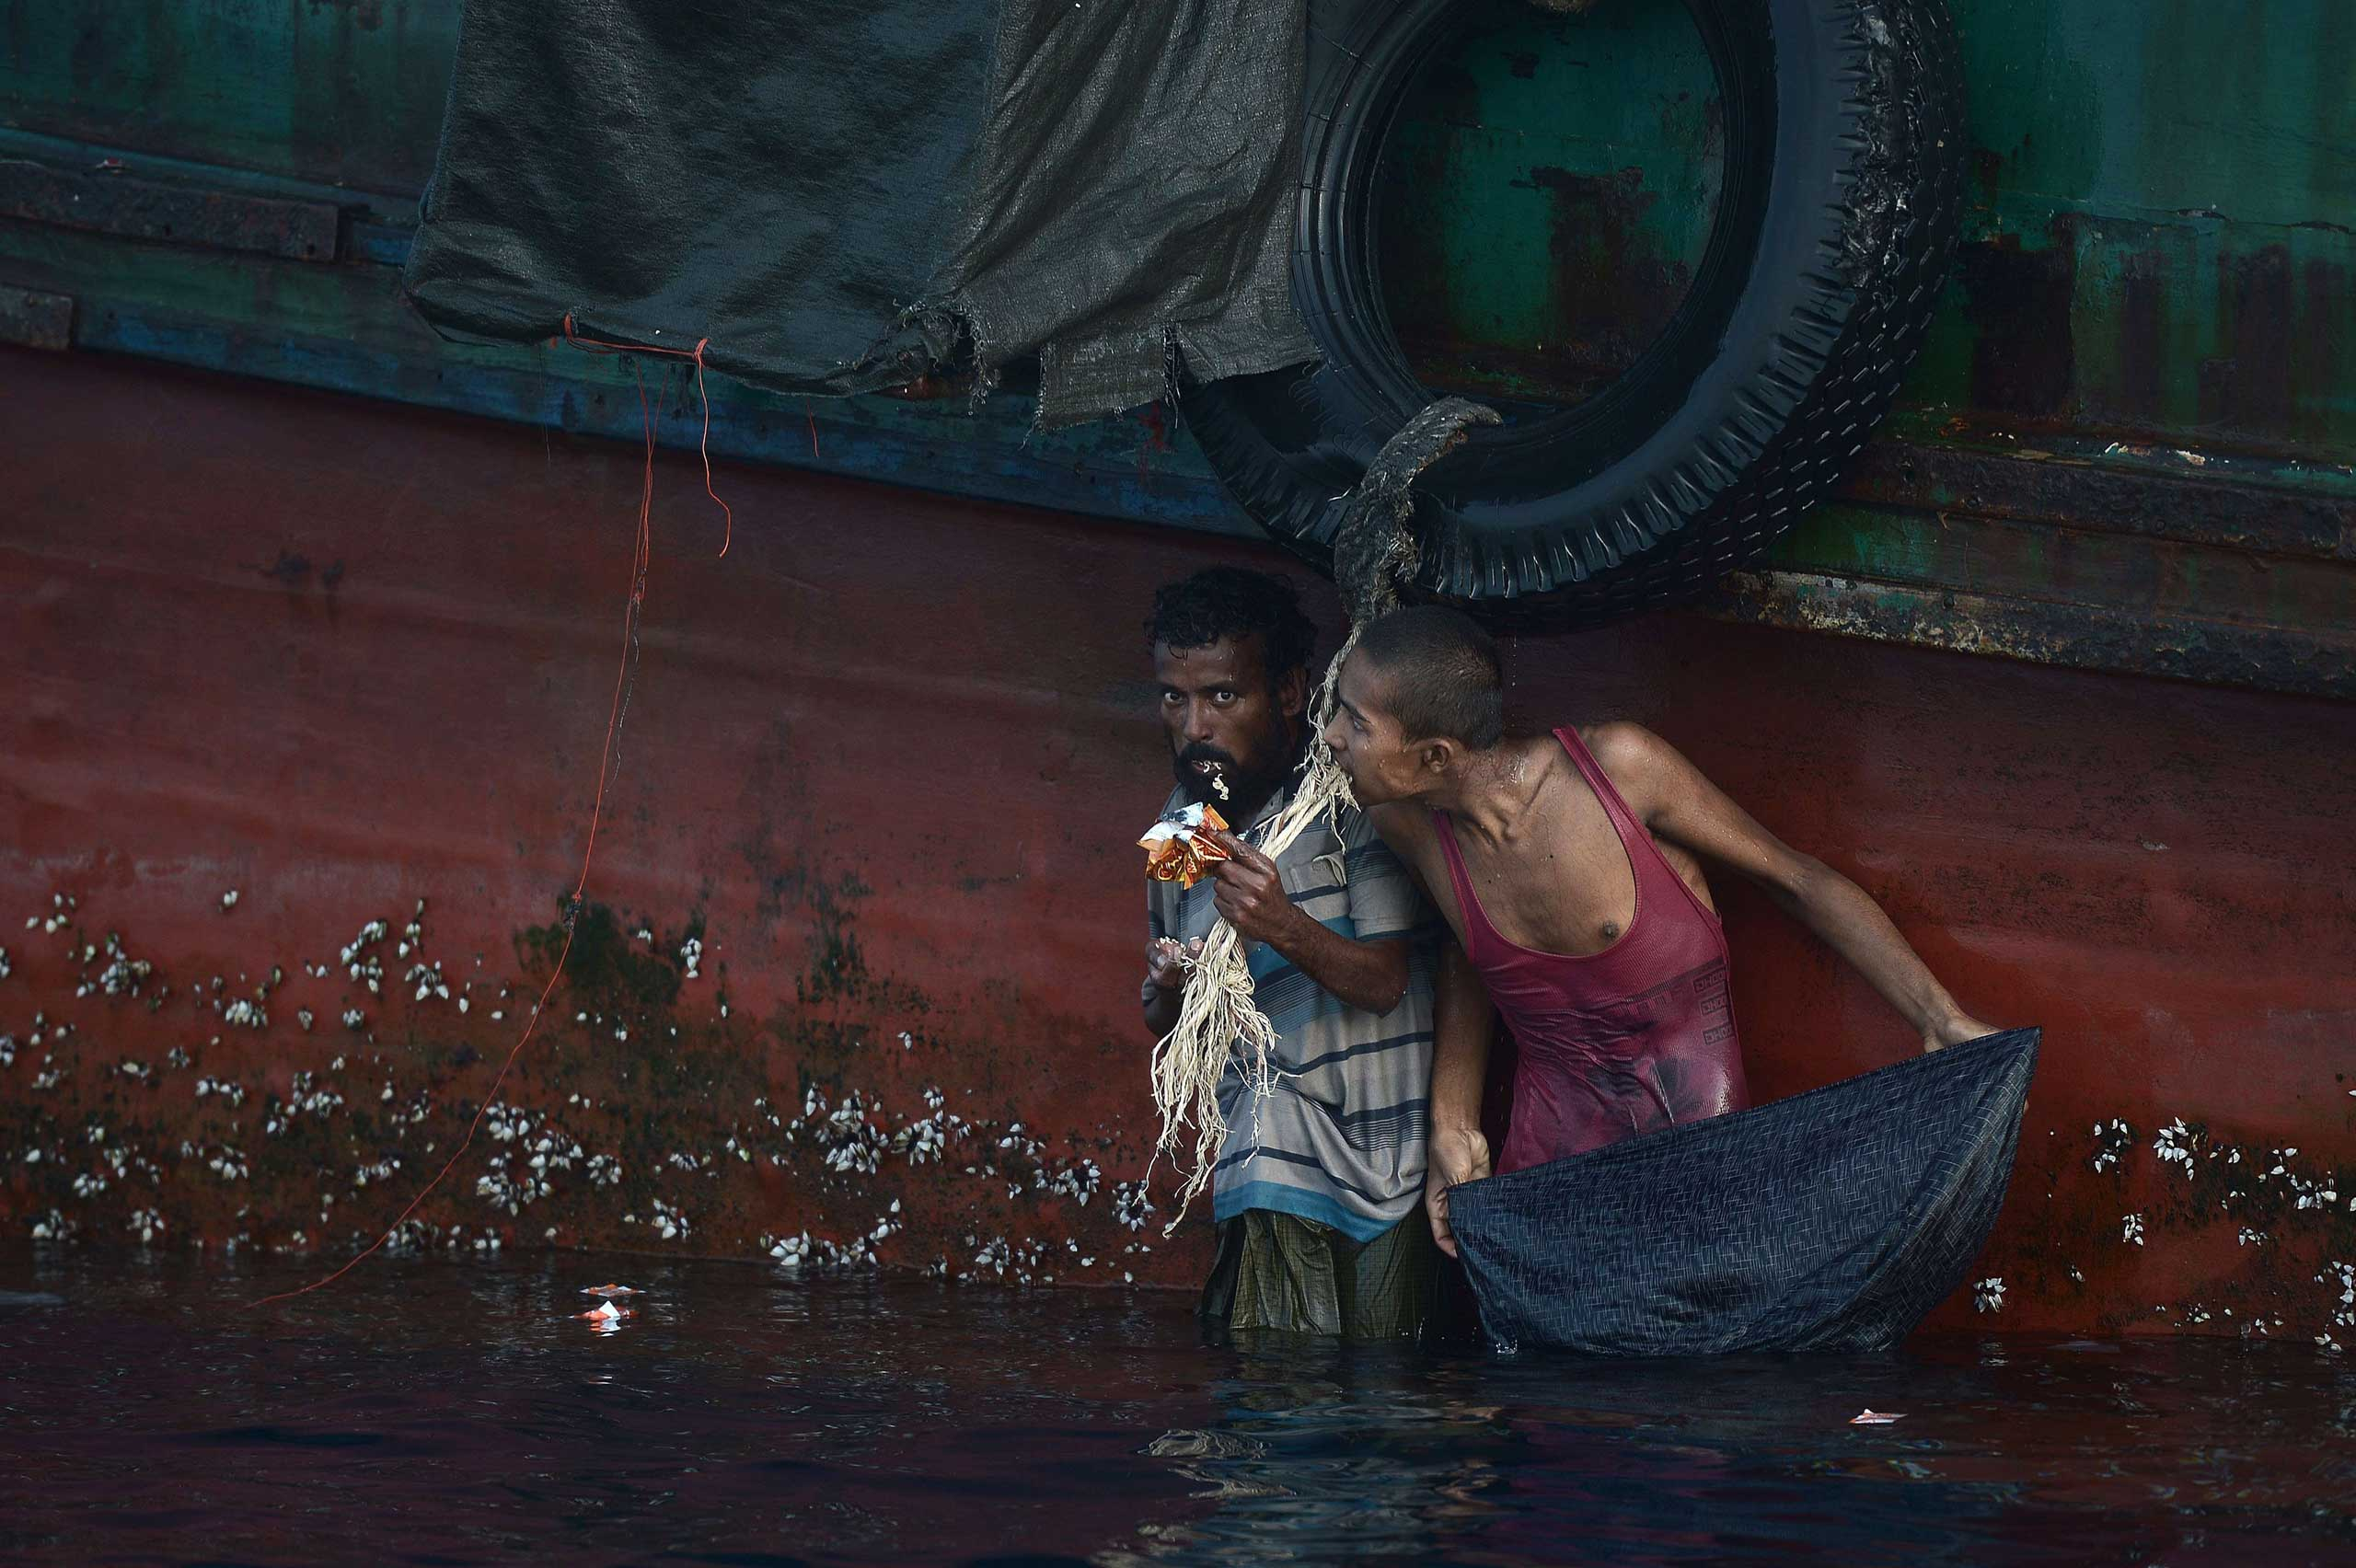 A Rohingya migrant eats food dropped by a Thai army helicopter after he jumped to collect the supplies at sea from a boat drifting in Thai waters off the southern island of Koh Lipe in the Andaman sea on May 14, 2015.